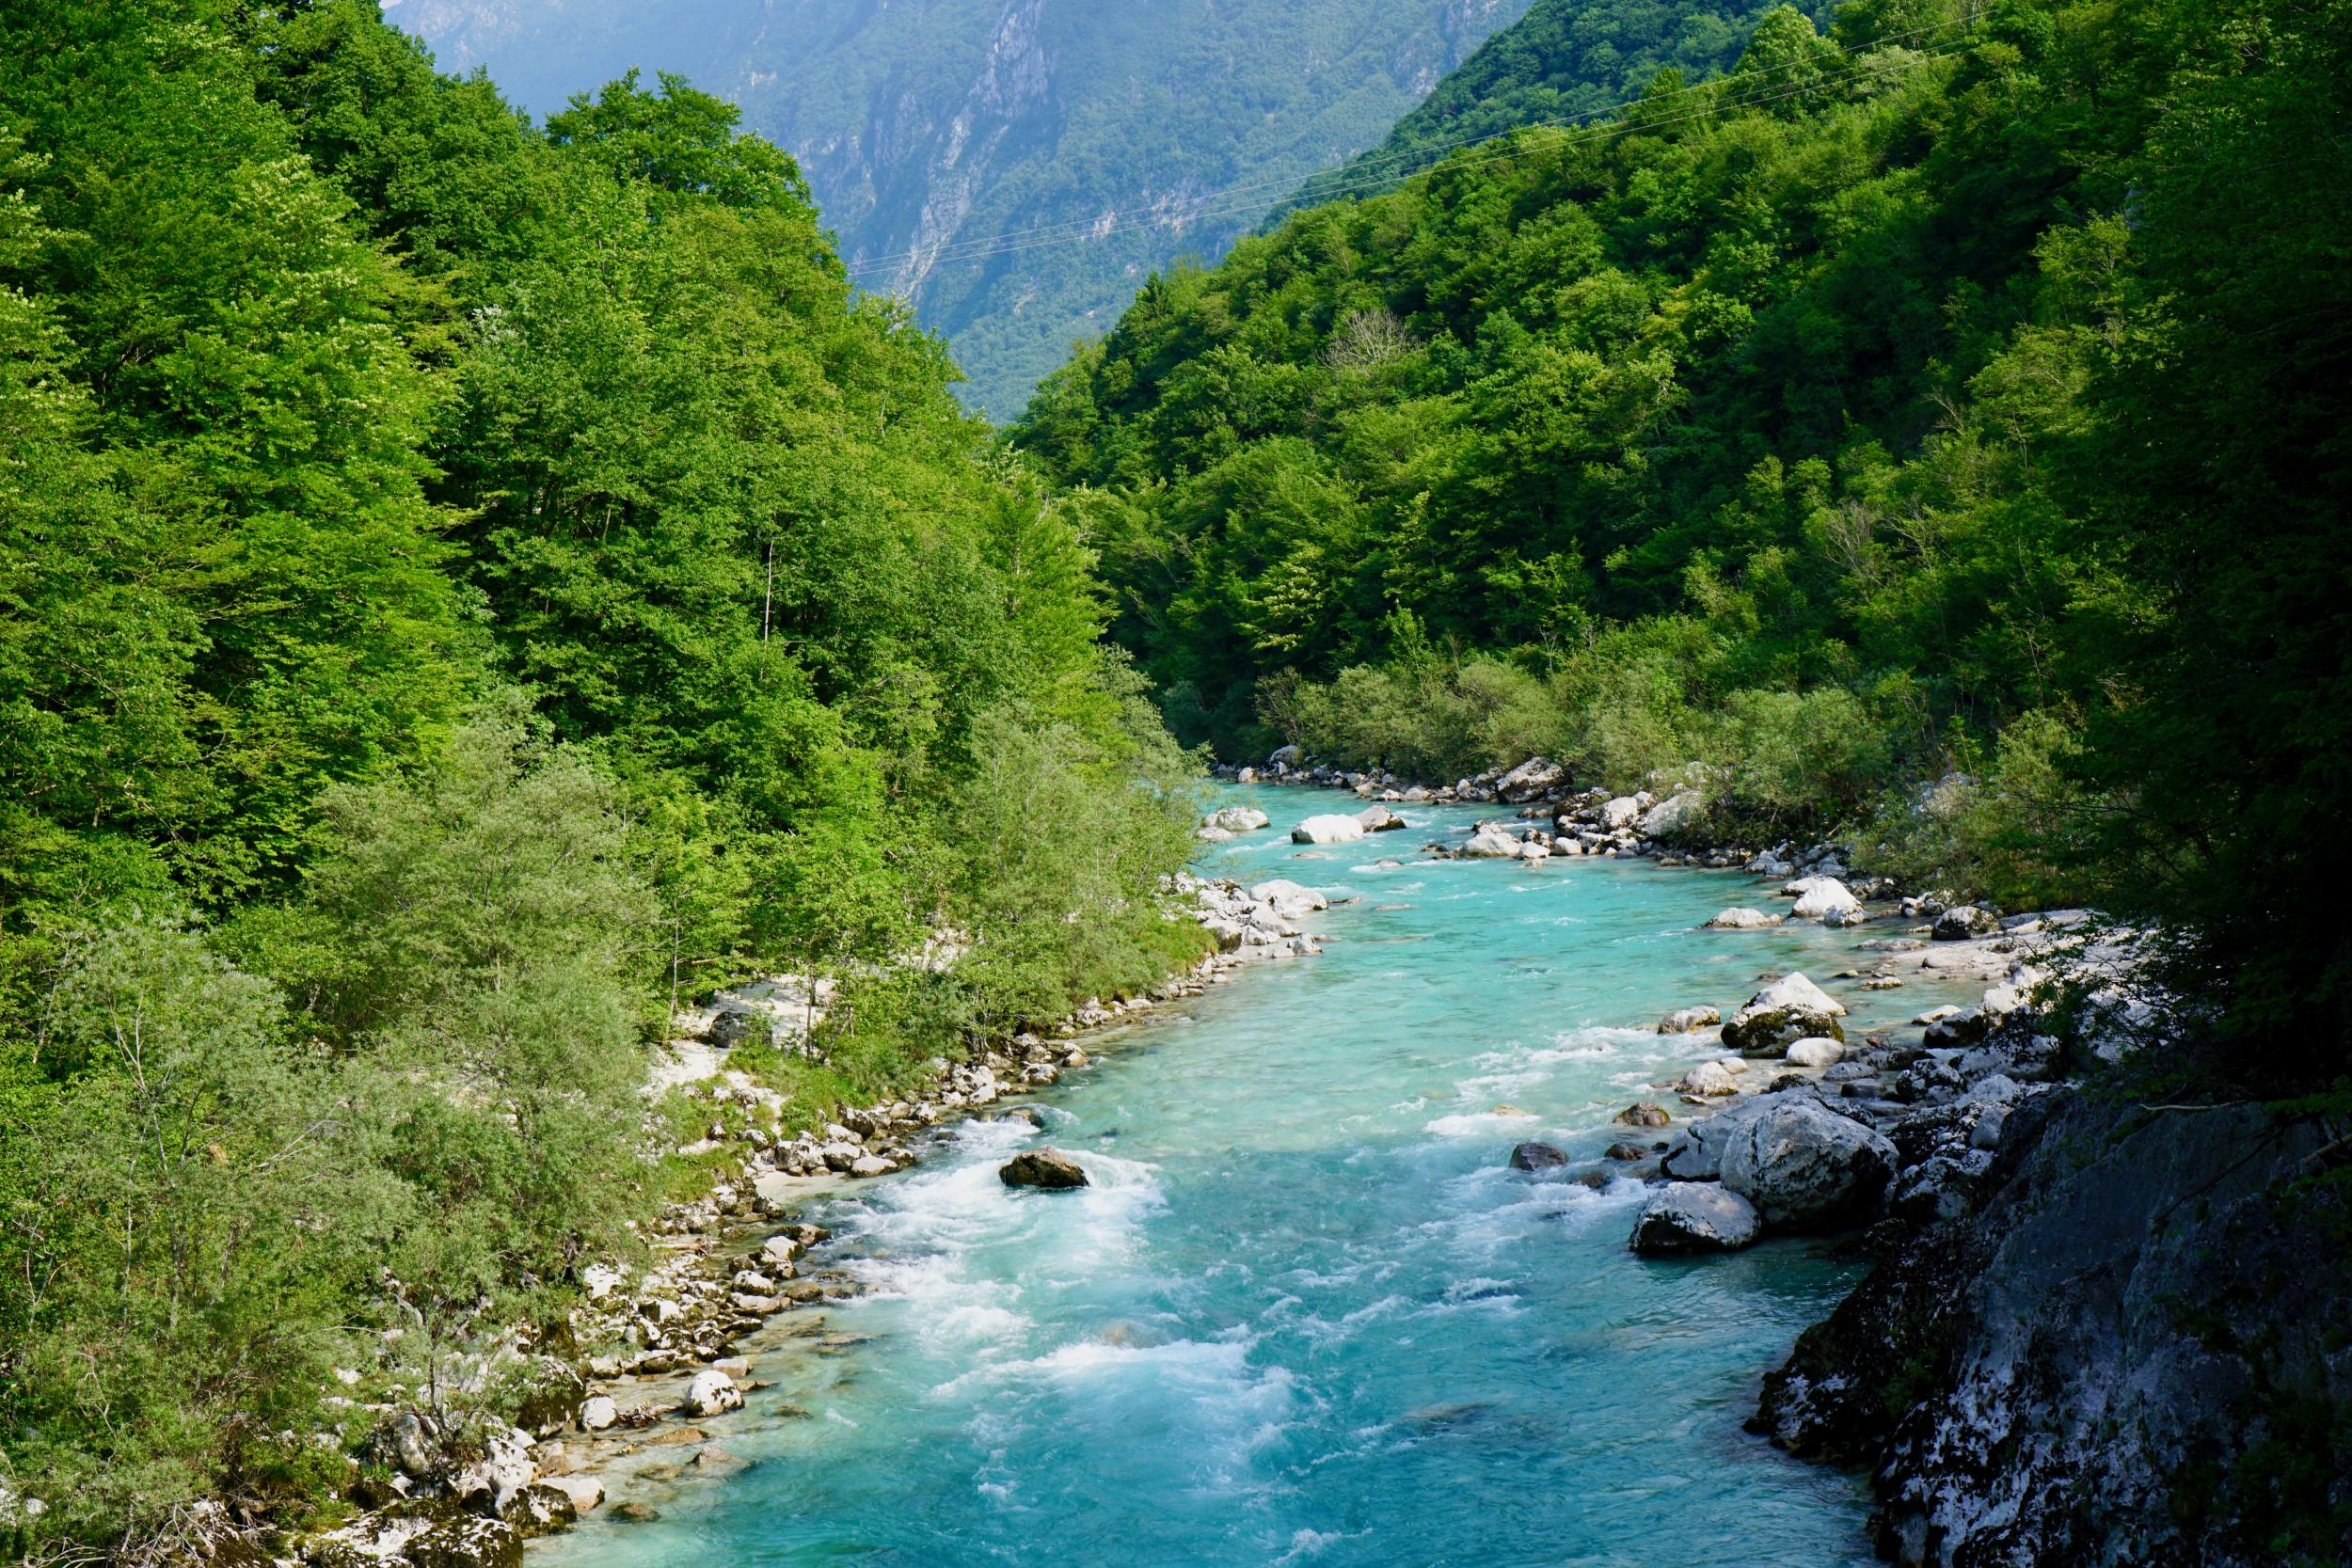 Soca valley: Exploring Slovenia's wild side on the ultimate green road trip